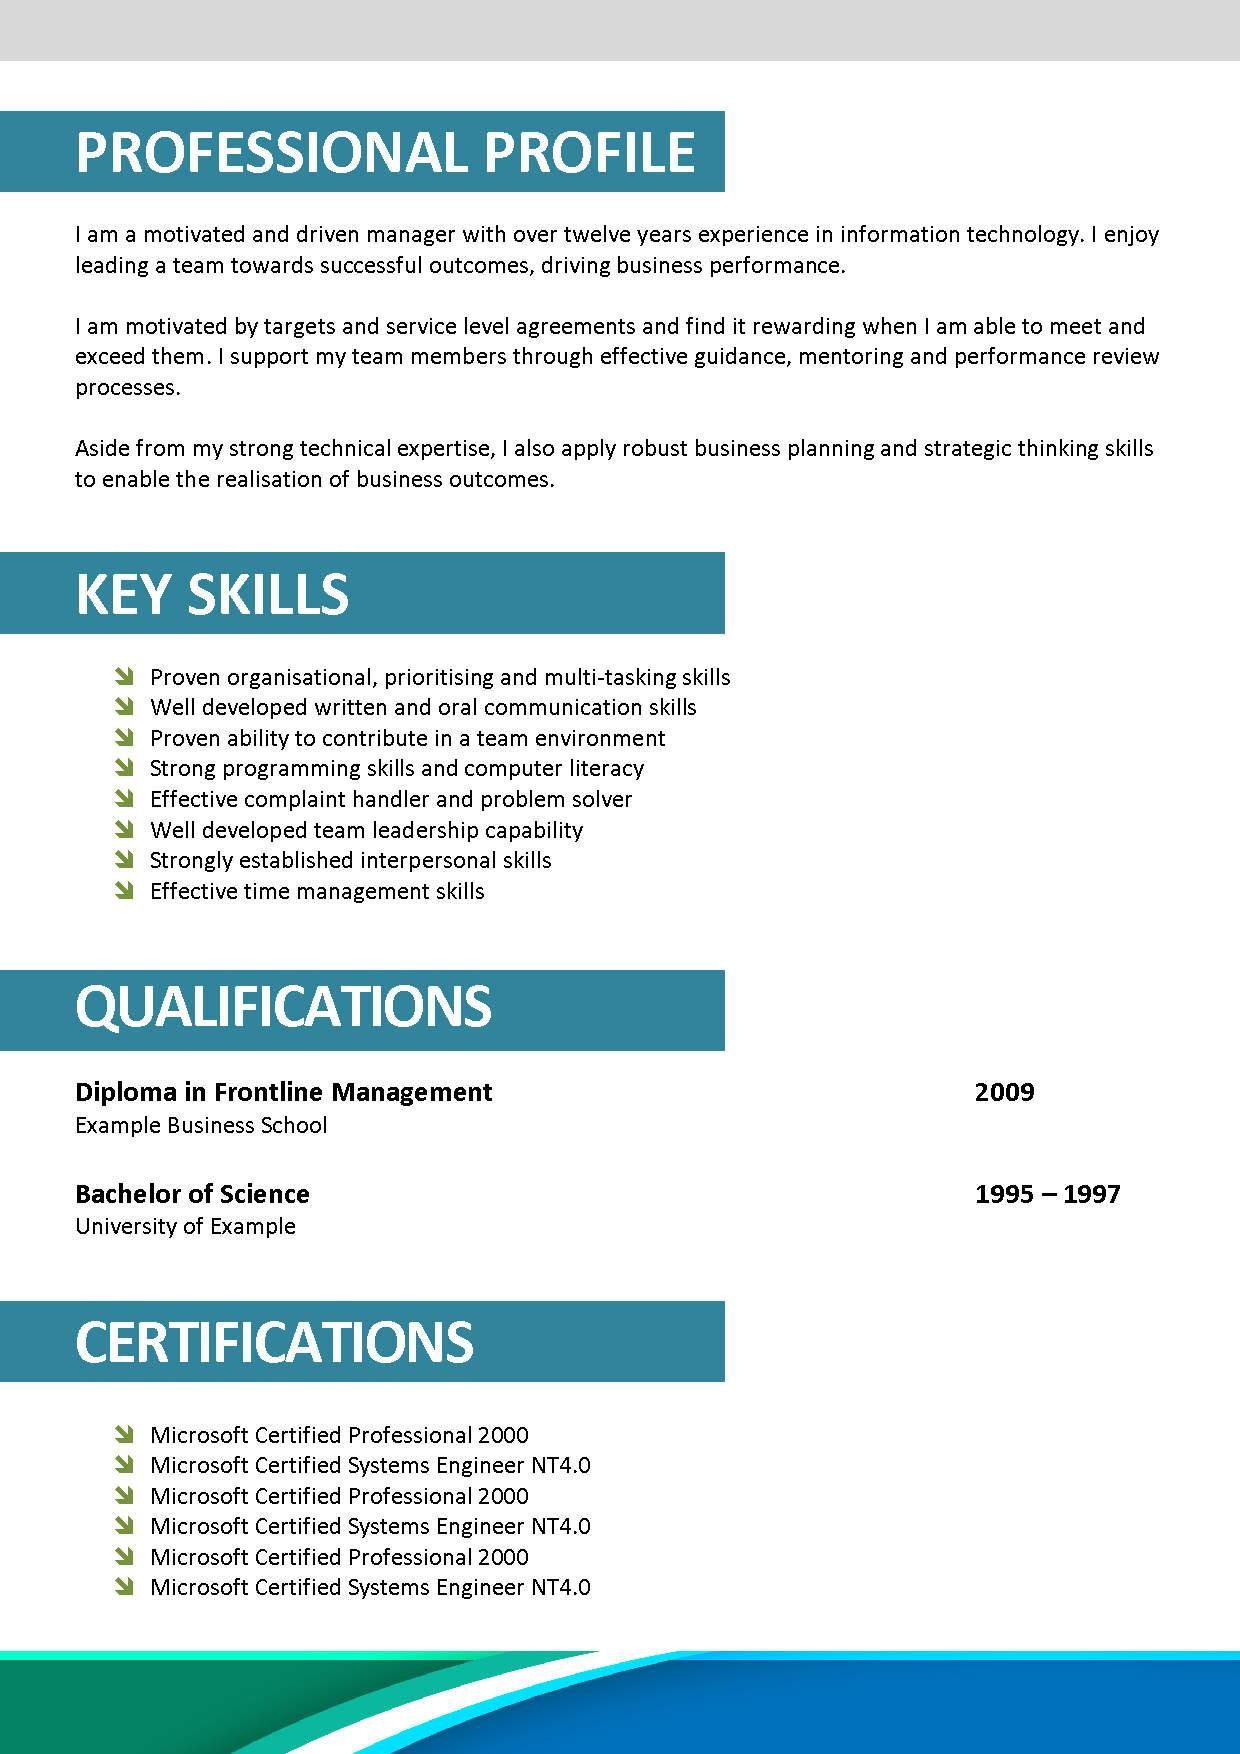 Profile Resume Samples Cover Letter Examples Profiles Writing Statement Personal Resume Template Professional Professional Resume Format Job Resume Format